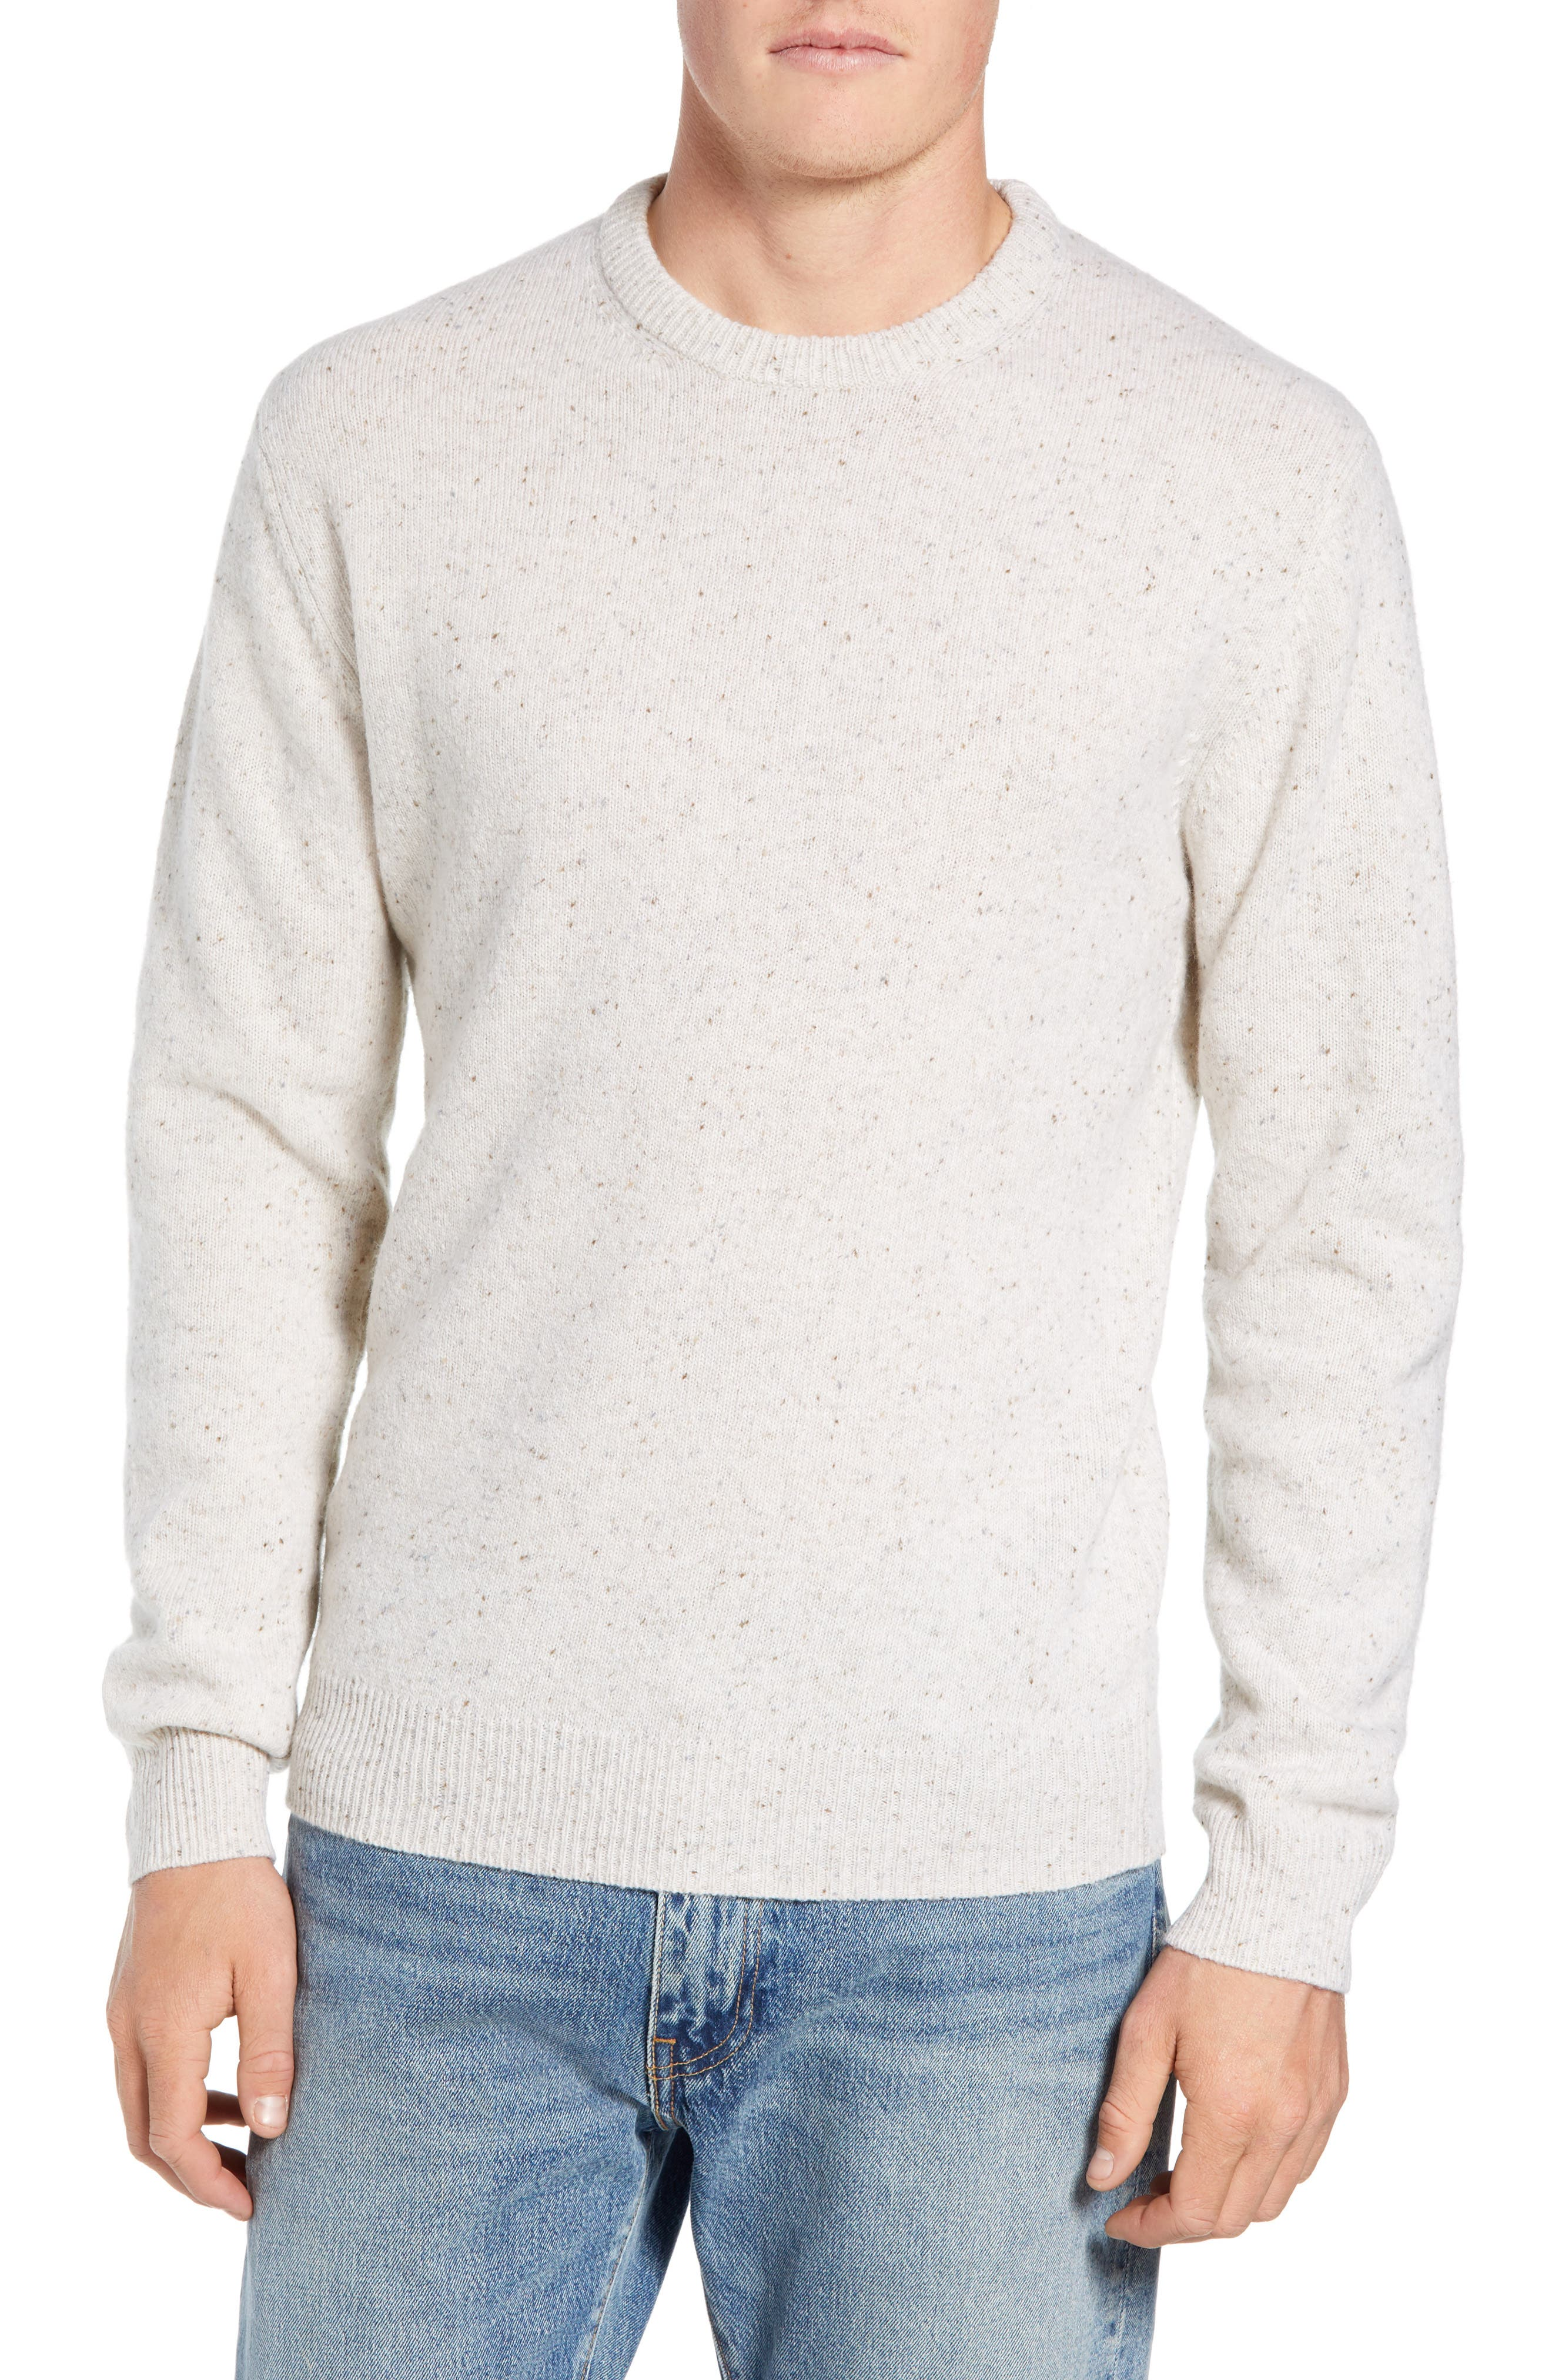 Donegal Sweater,                         Main,                         color, CUBA WHITE